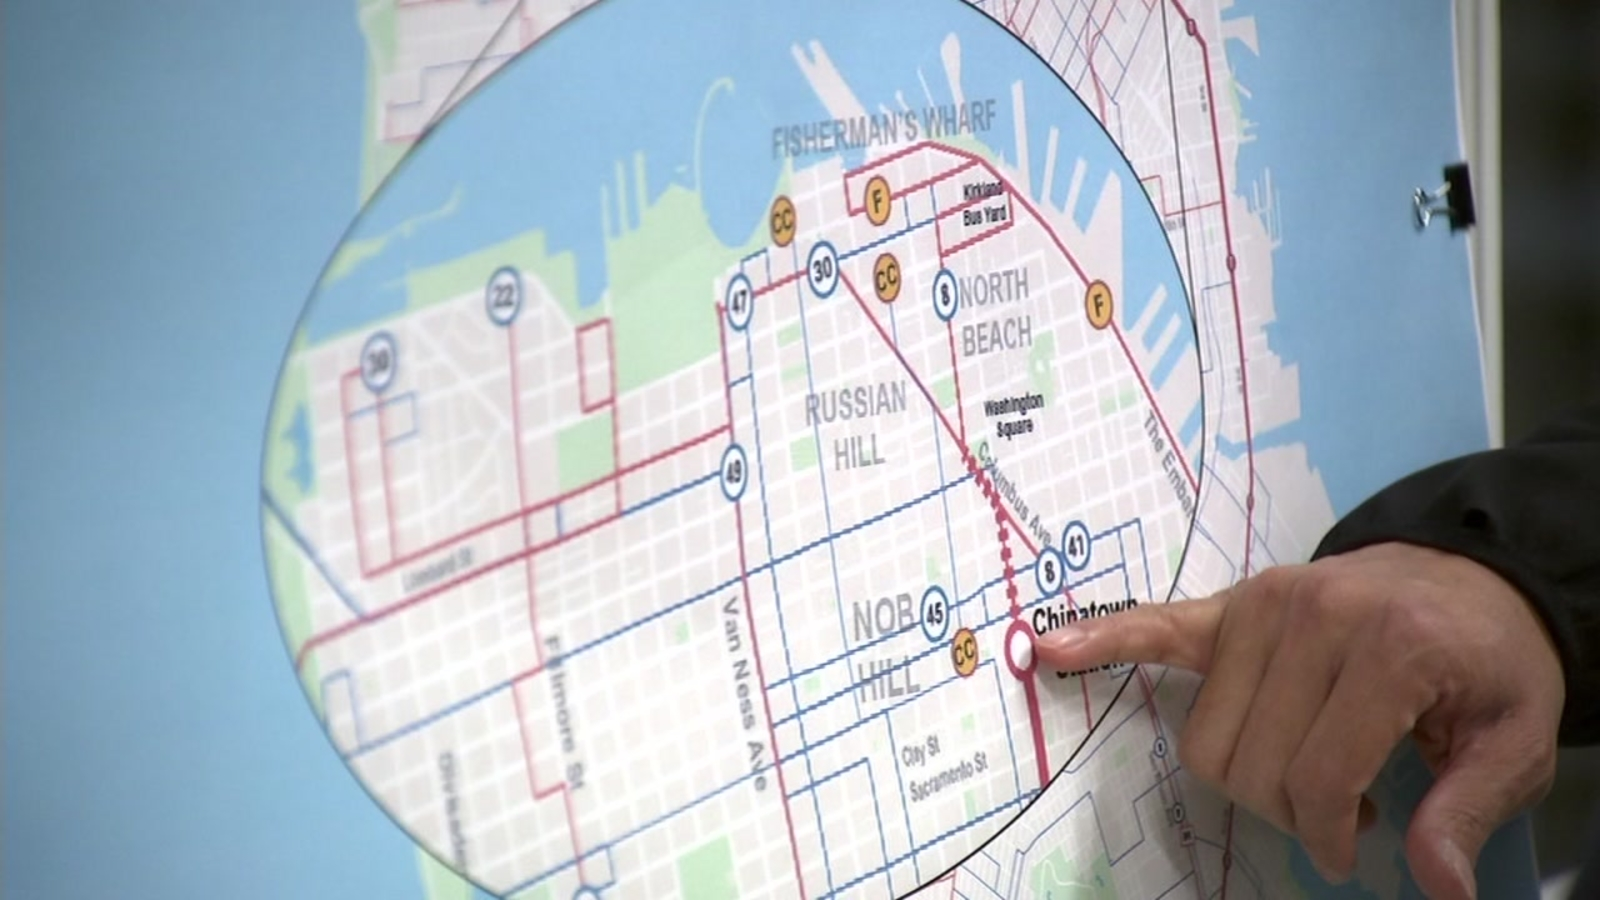 Central Subway Map.Sfmta Holds Community Meeting To Discuss Central Subway Project